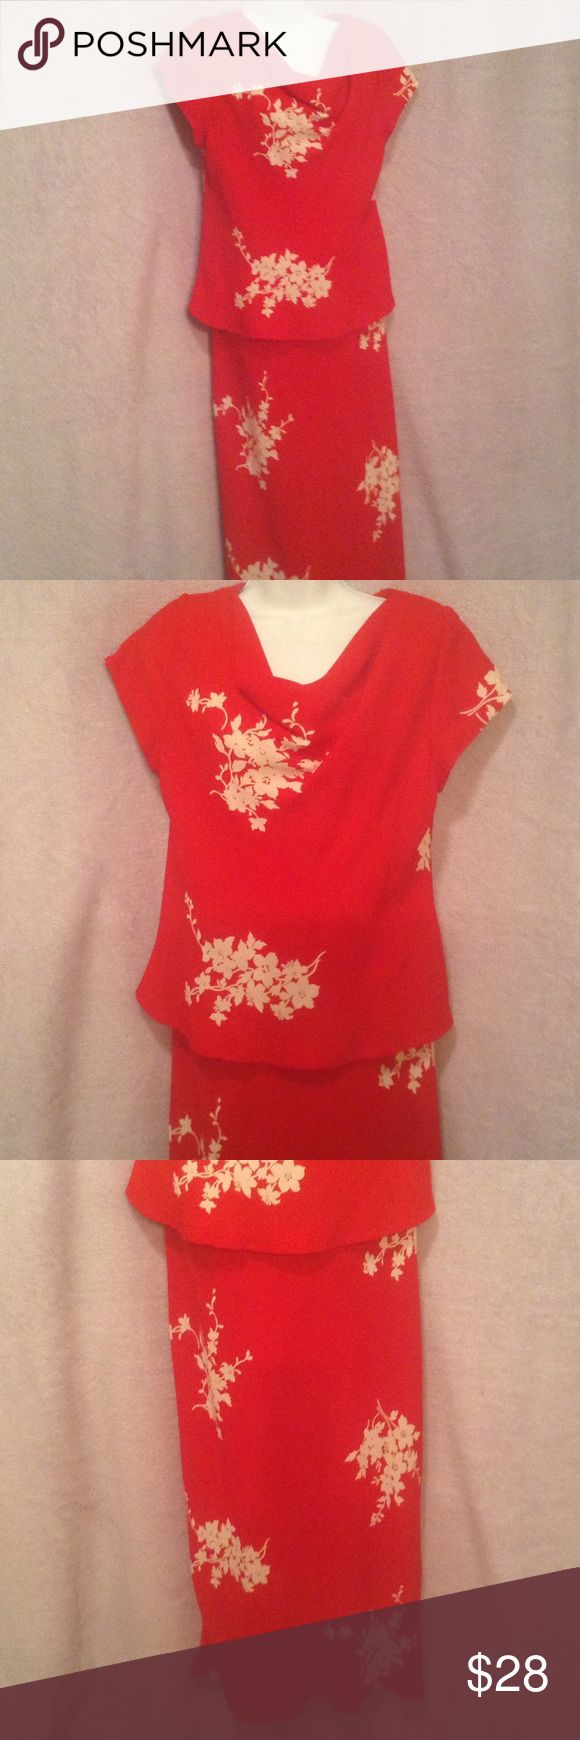 RED Occasion Dress Red with white floral design. Drape neck, short sleeve. Looks like 2 piece, top is lined. Great for wedding parties or spring galas. Coldwater Creek Dresses